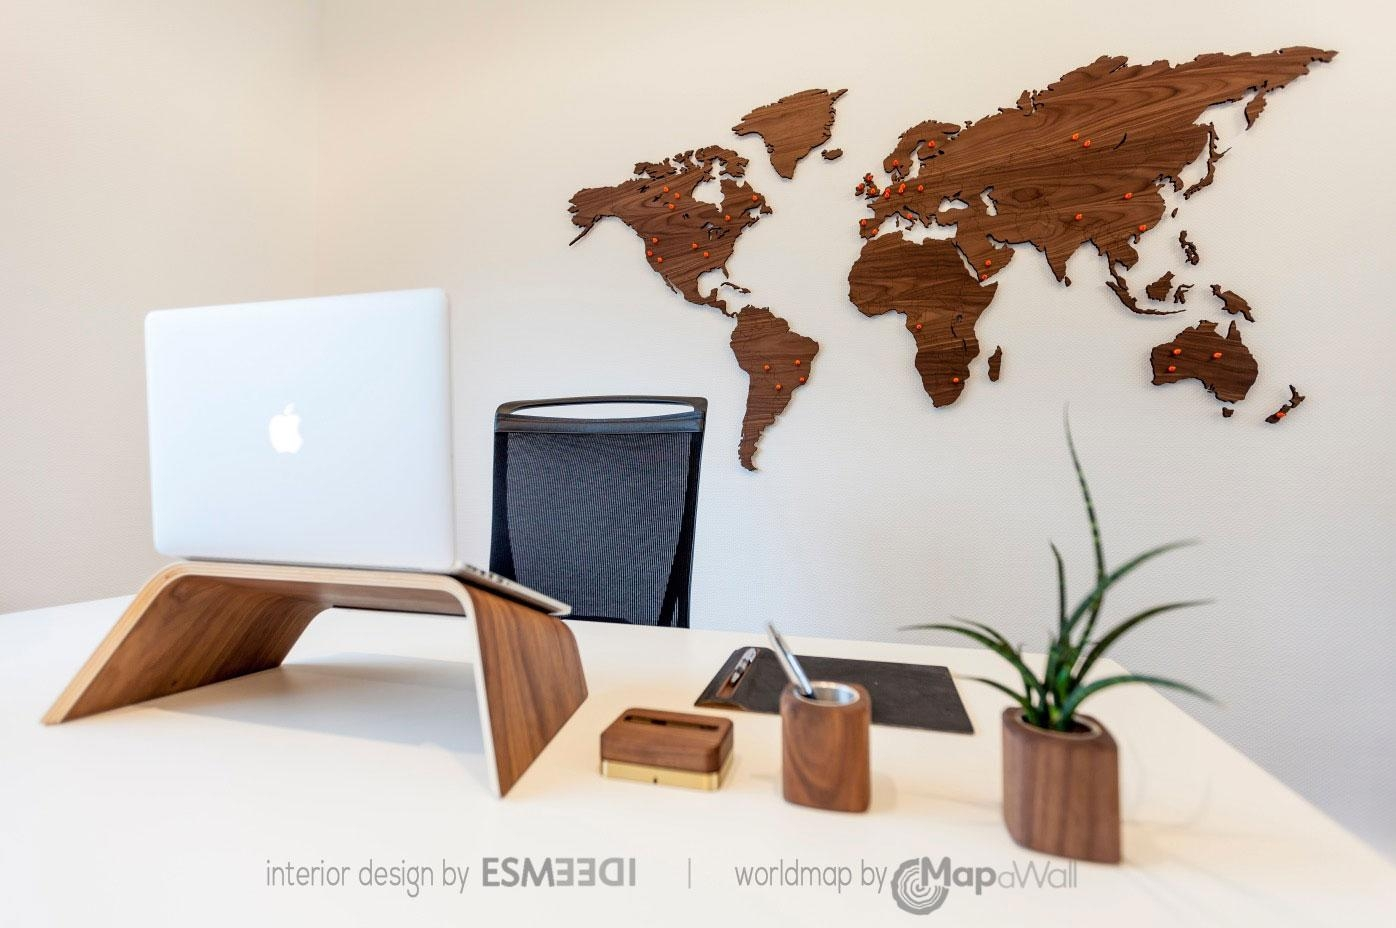 World Map Walnut As Office Decoration | Woodenworldmap Within World Map Wood Wall Art (View 7 of 20)